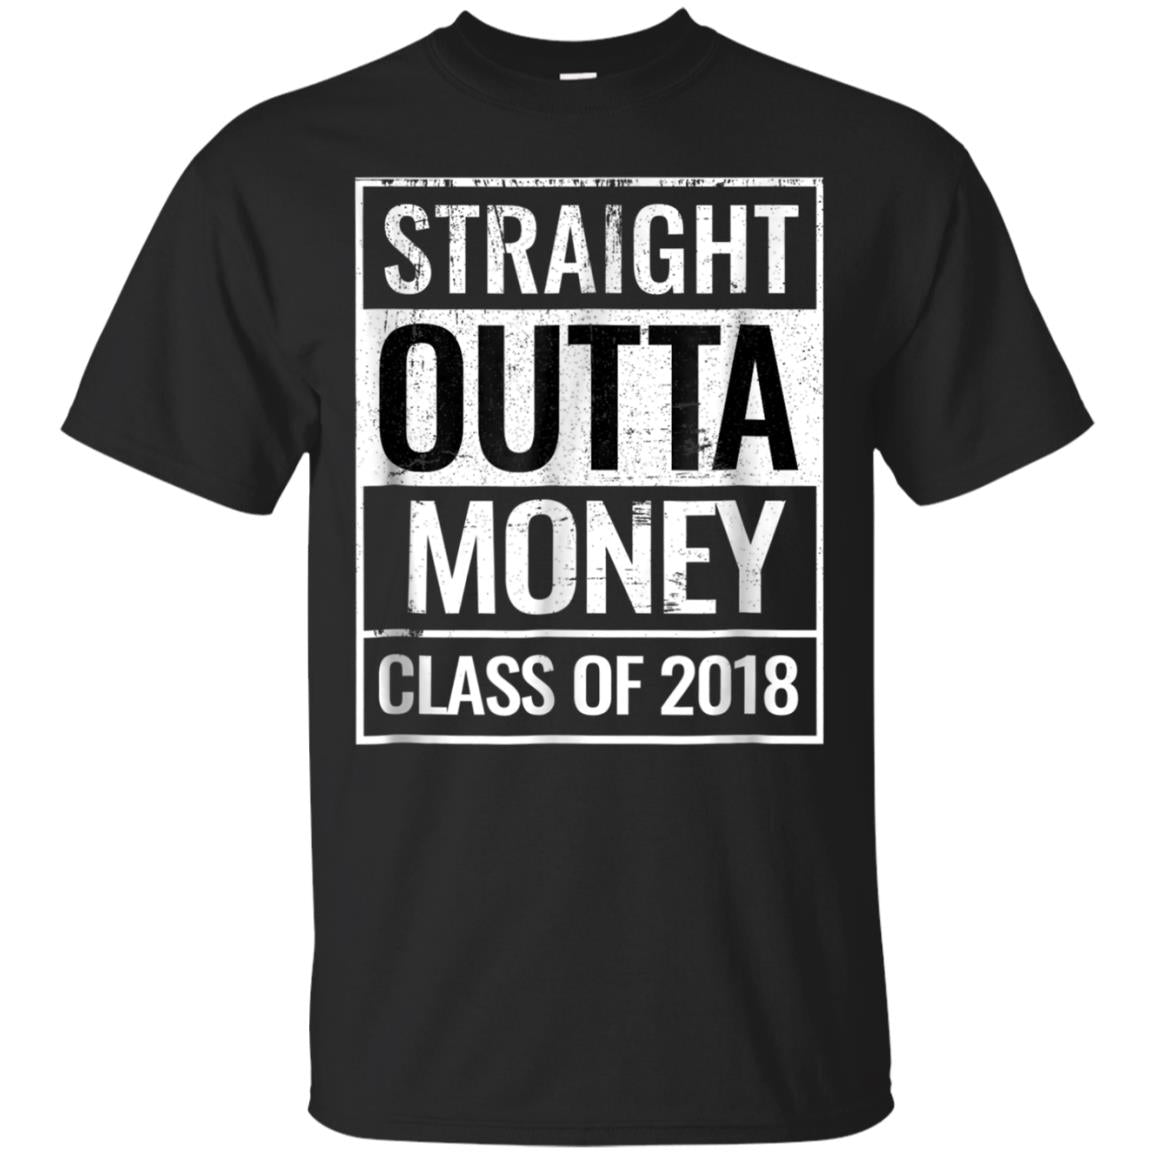 Class of 2018 Straight Outta Money Mens Womens Tshirt